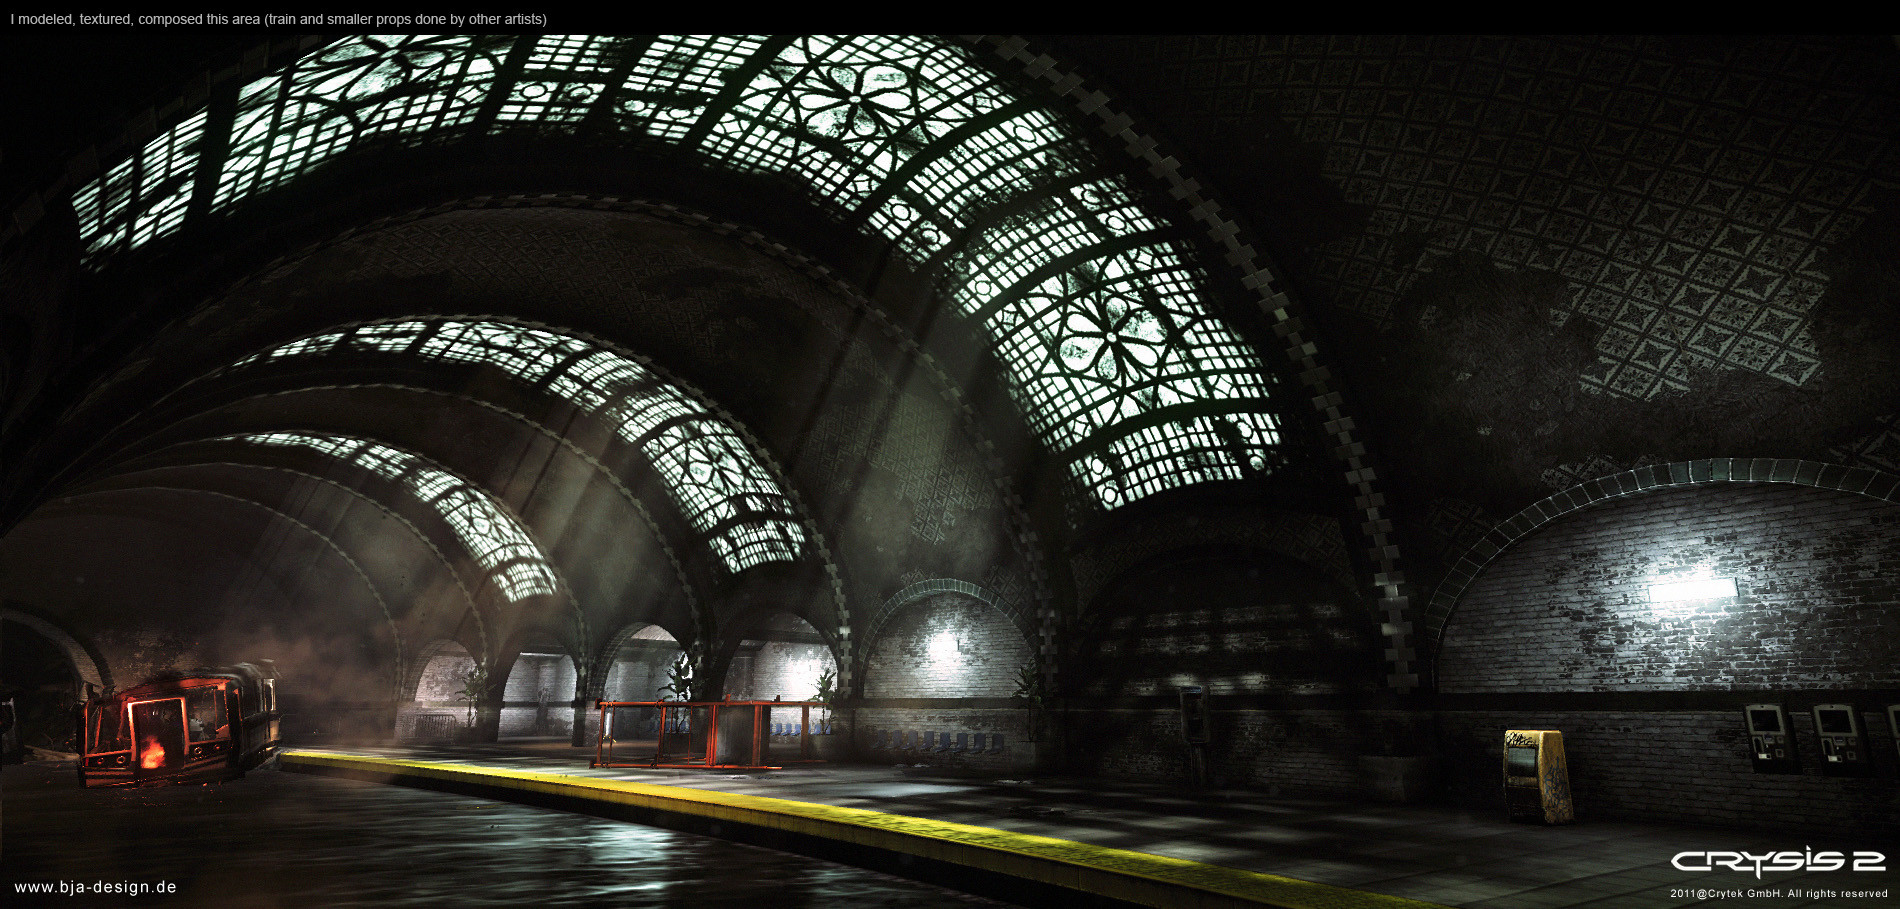 Environment work from Crysis 2. Robert was responsible for modeling, texturing and composition.